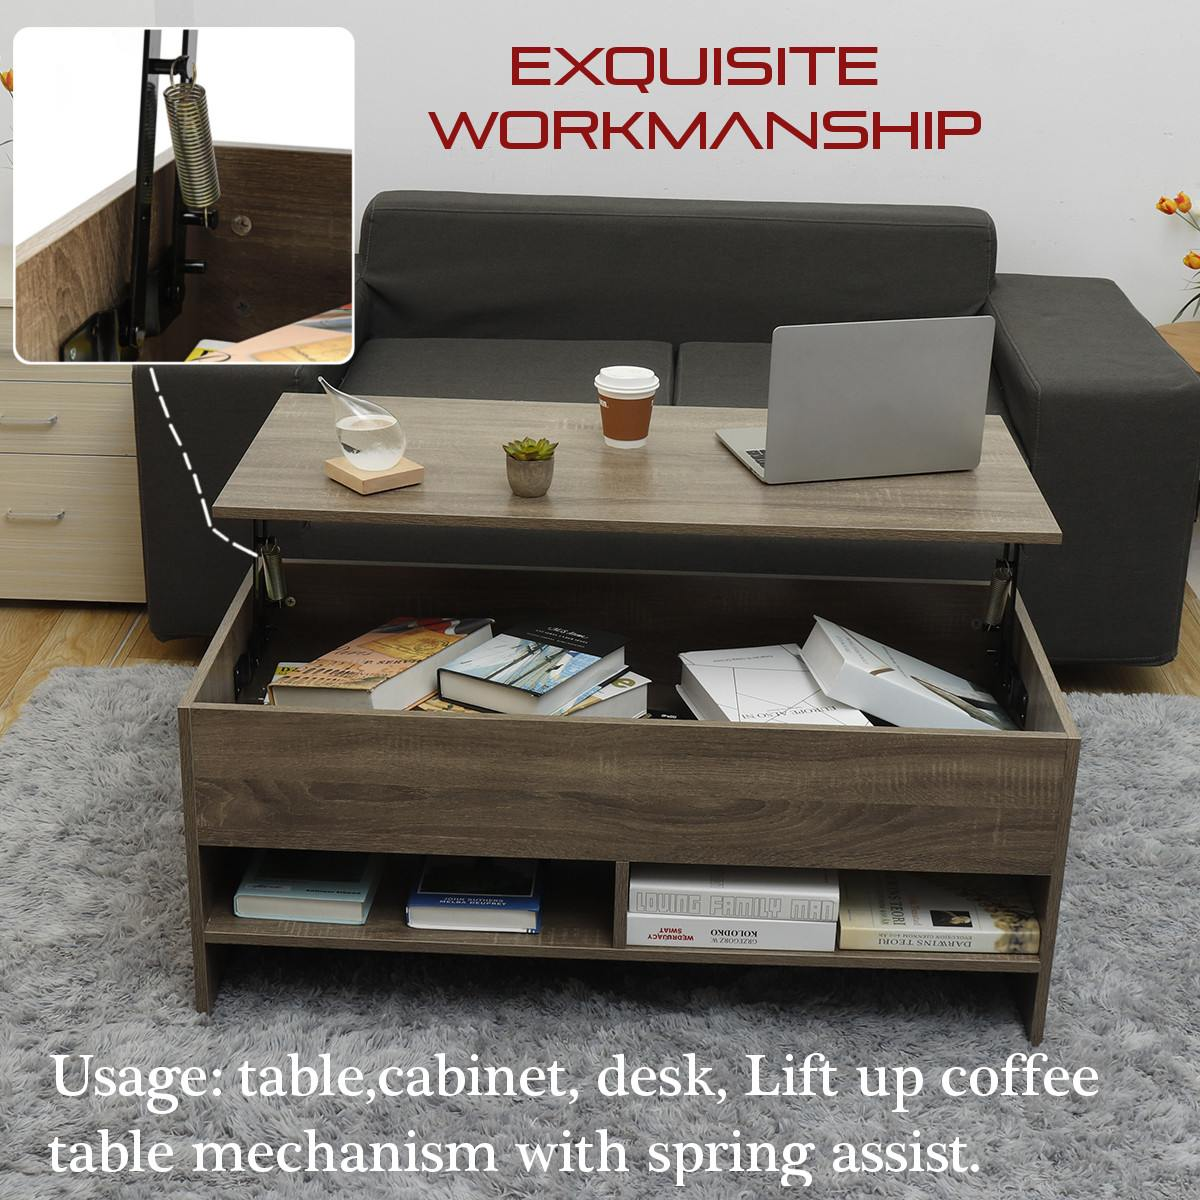 105x50x45cm Nordic Modern Adjustable Lifting Tea Table Sofa Side Table Living Room Multifunctional Furniture With Storage Space